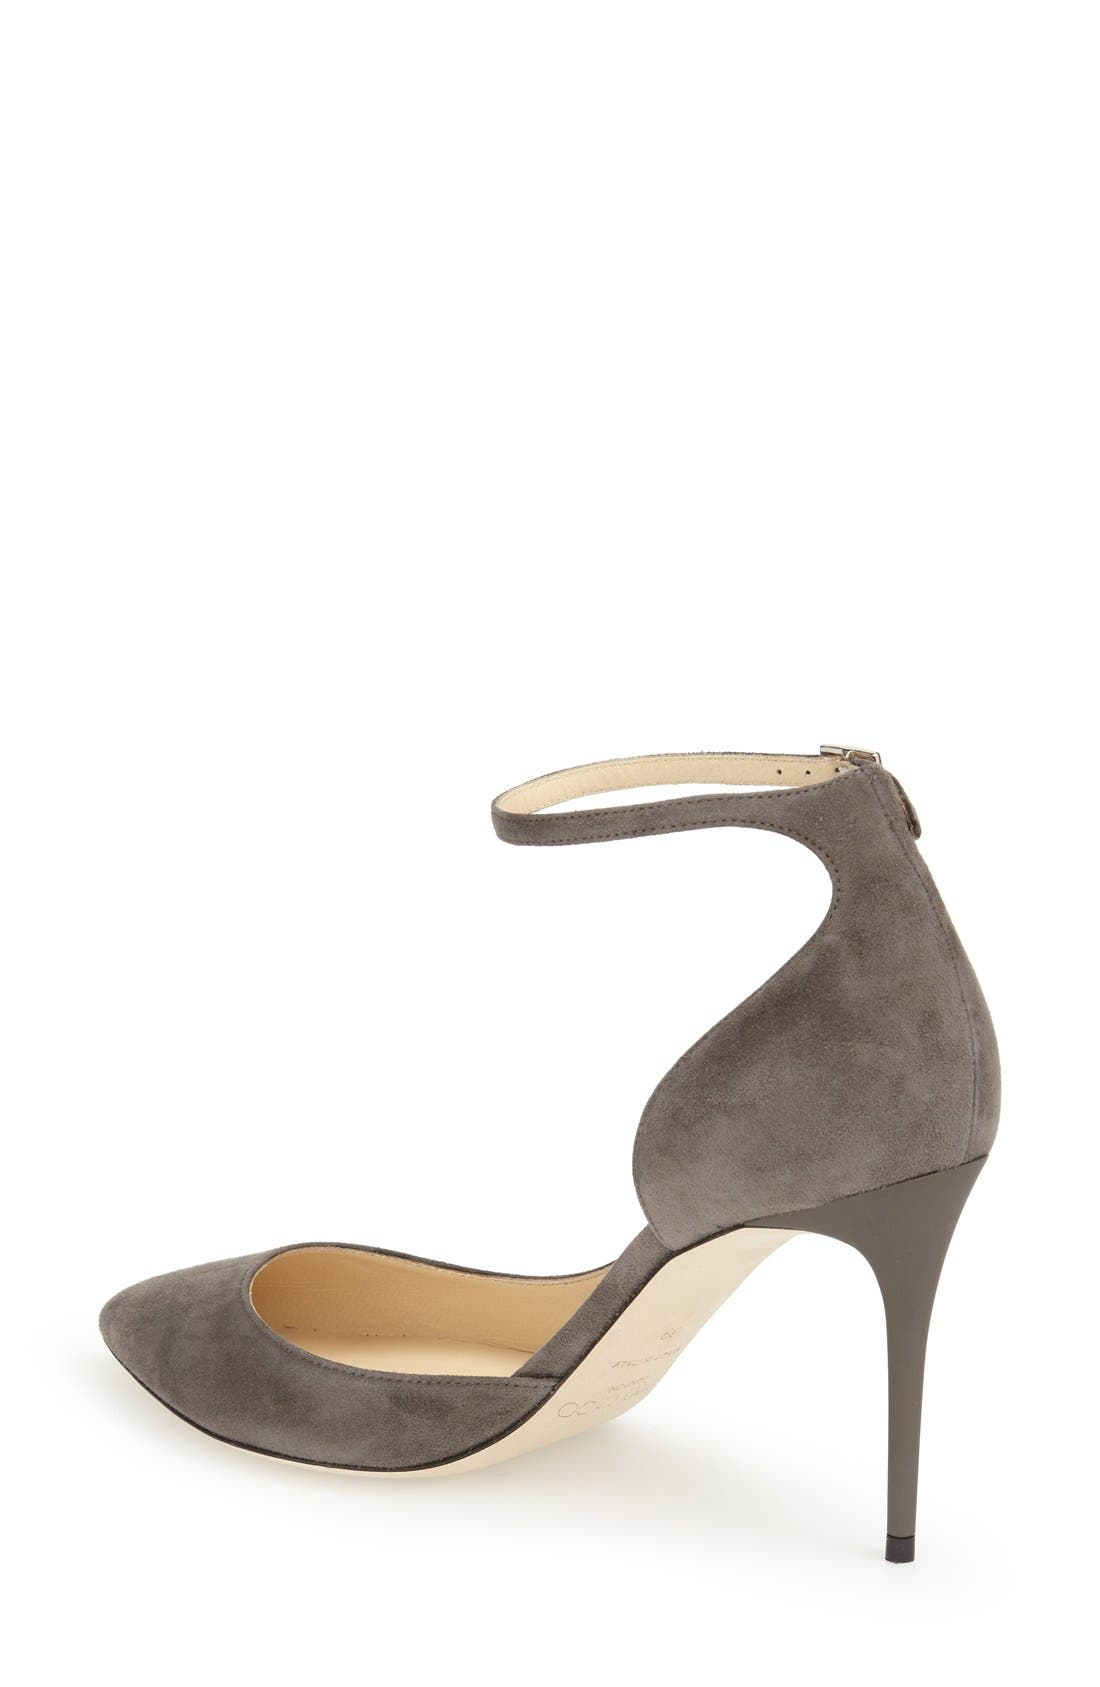 'Lucy' Half d'Orsay Pointy Toe Pump,                             Alternate thumbnail 2, color,                             Taupe Grey Suede